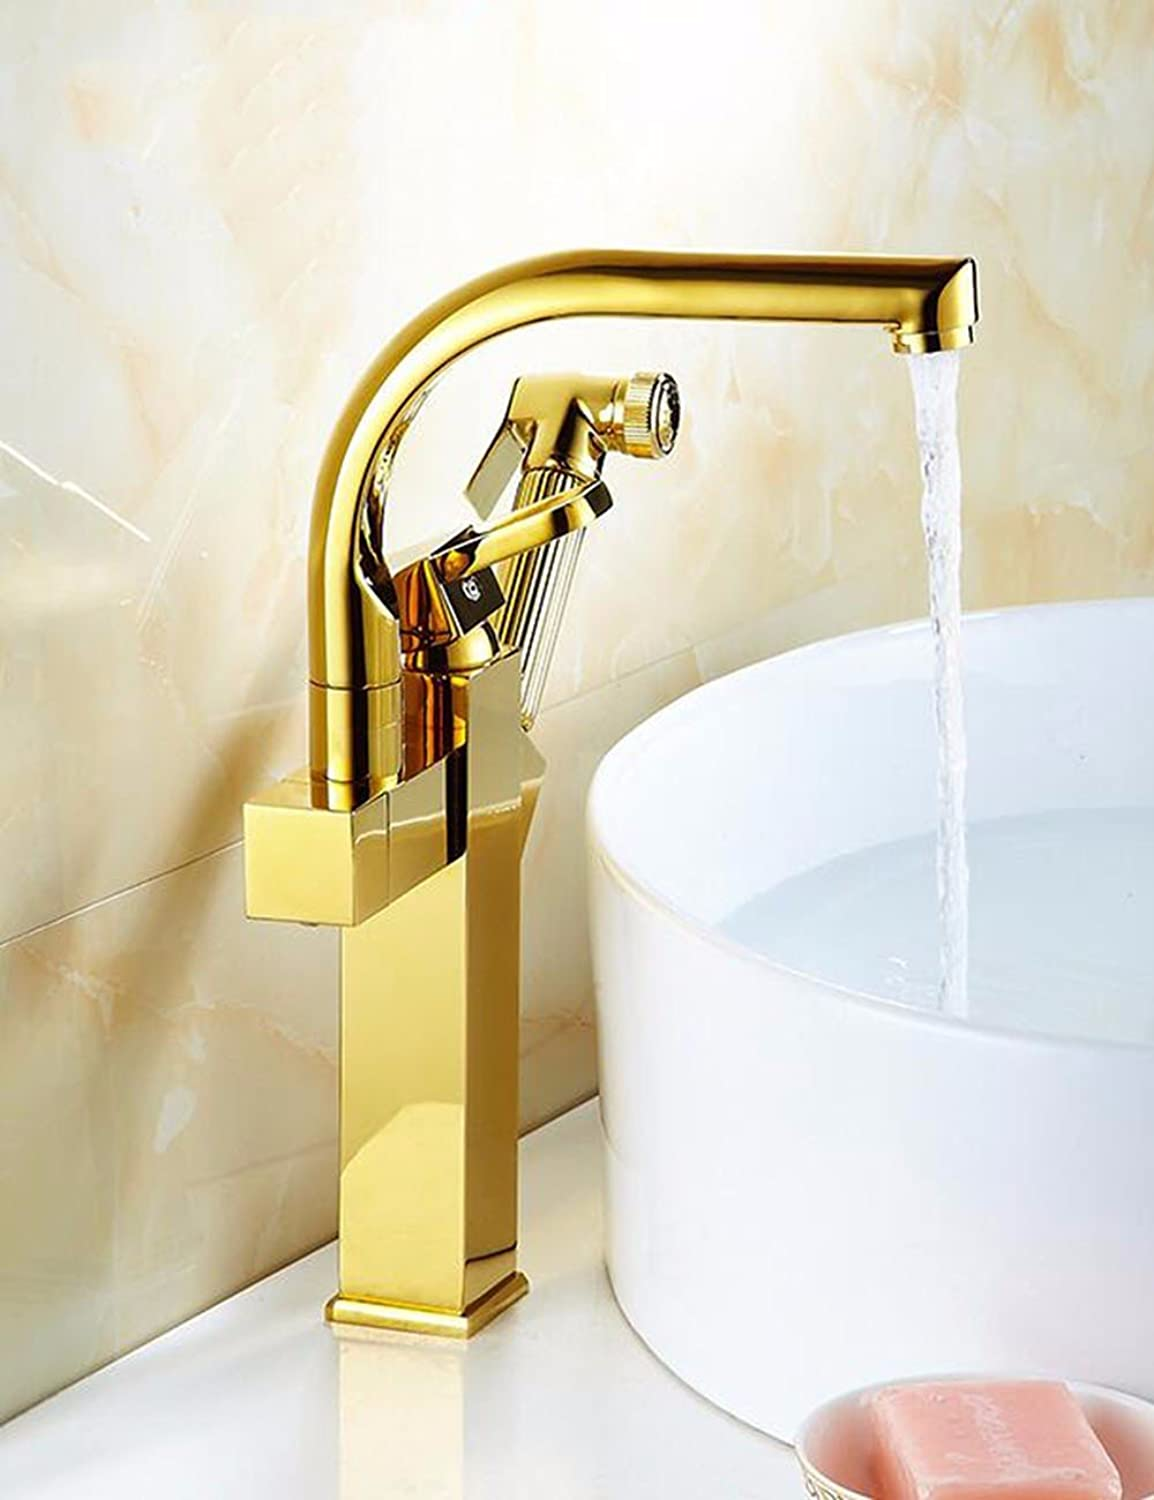 Qmpzg-gold-Plated Pull Cu All Basin Mixer?Hot And Cold Scalable Stretch Tap?Basin Faucet?Bench Basin Faucet?C